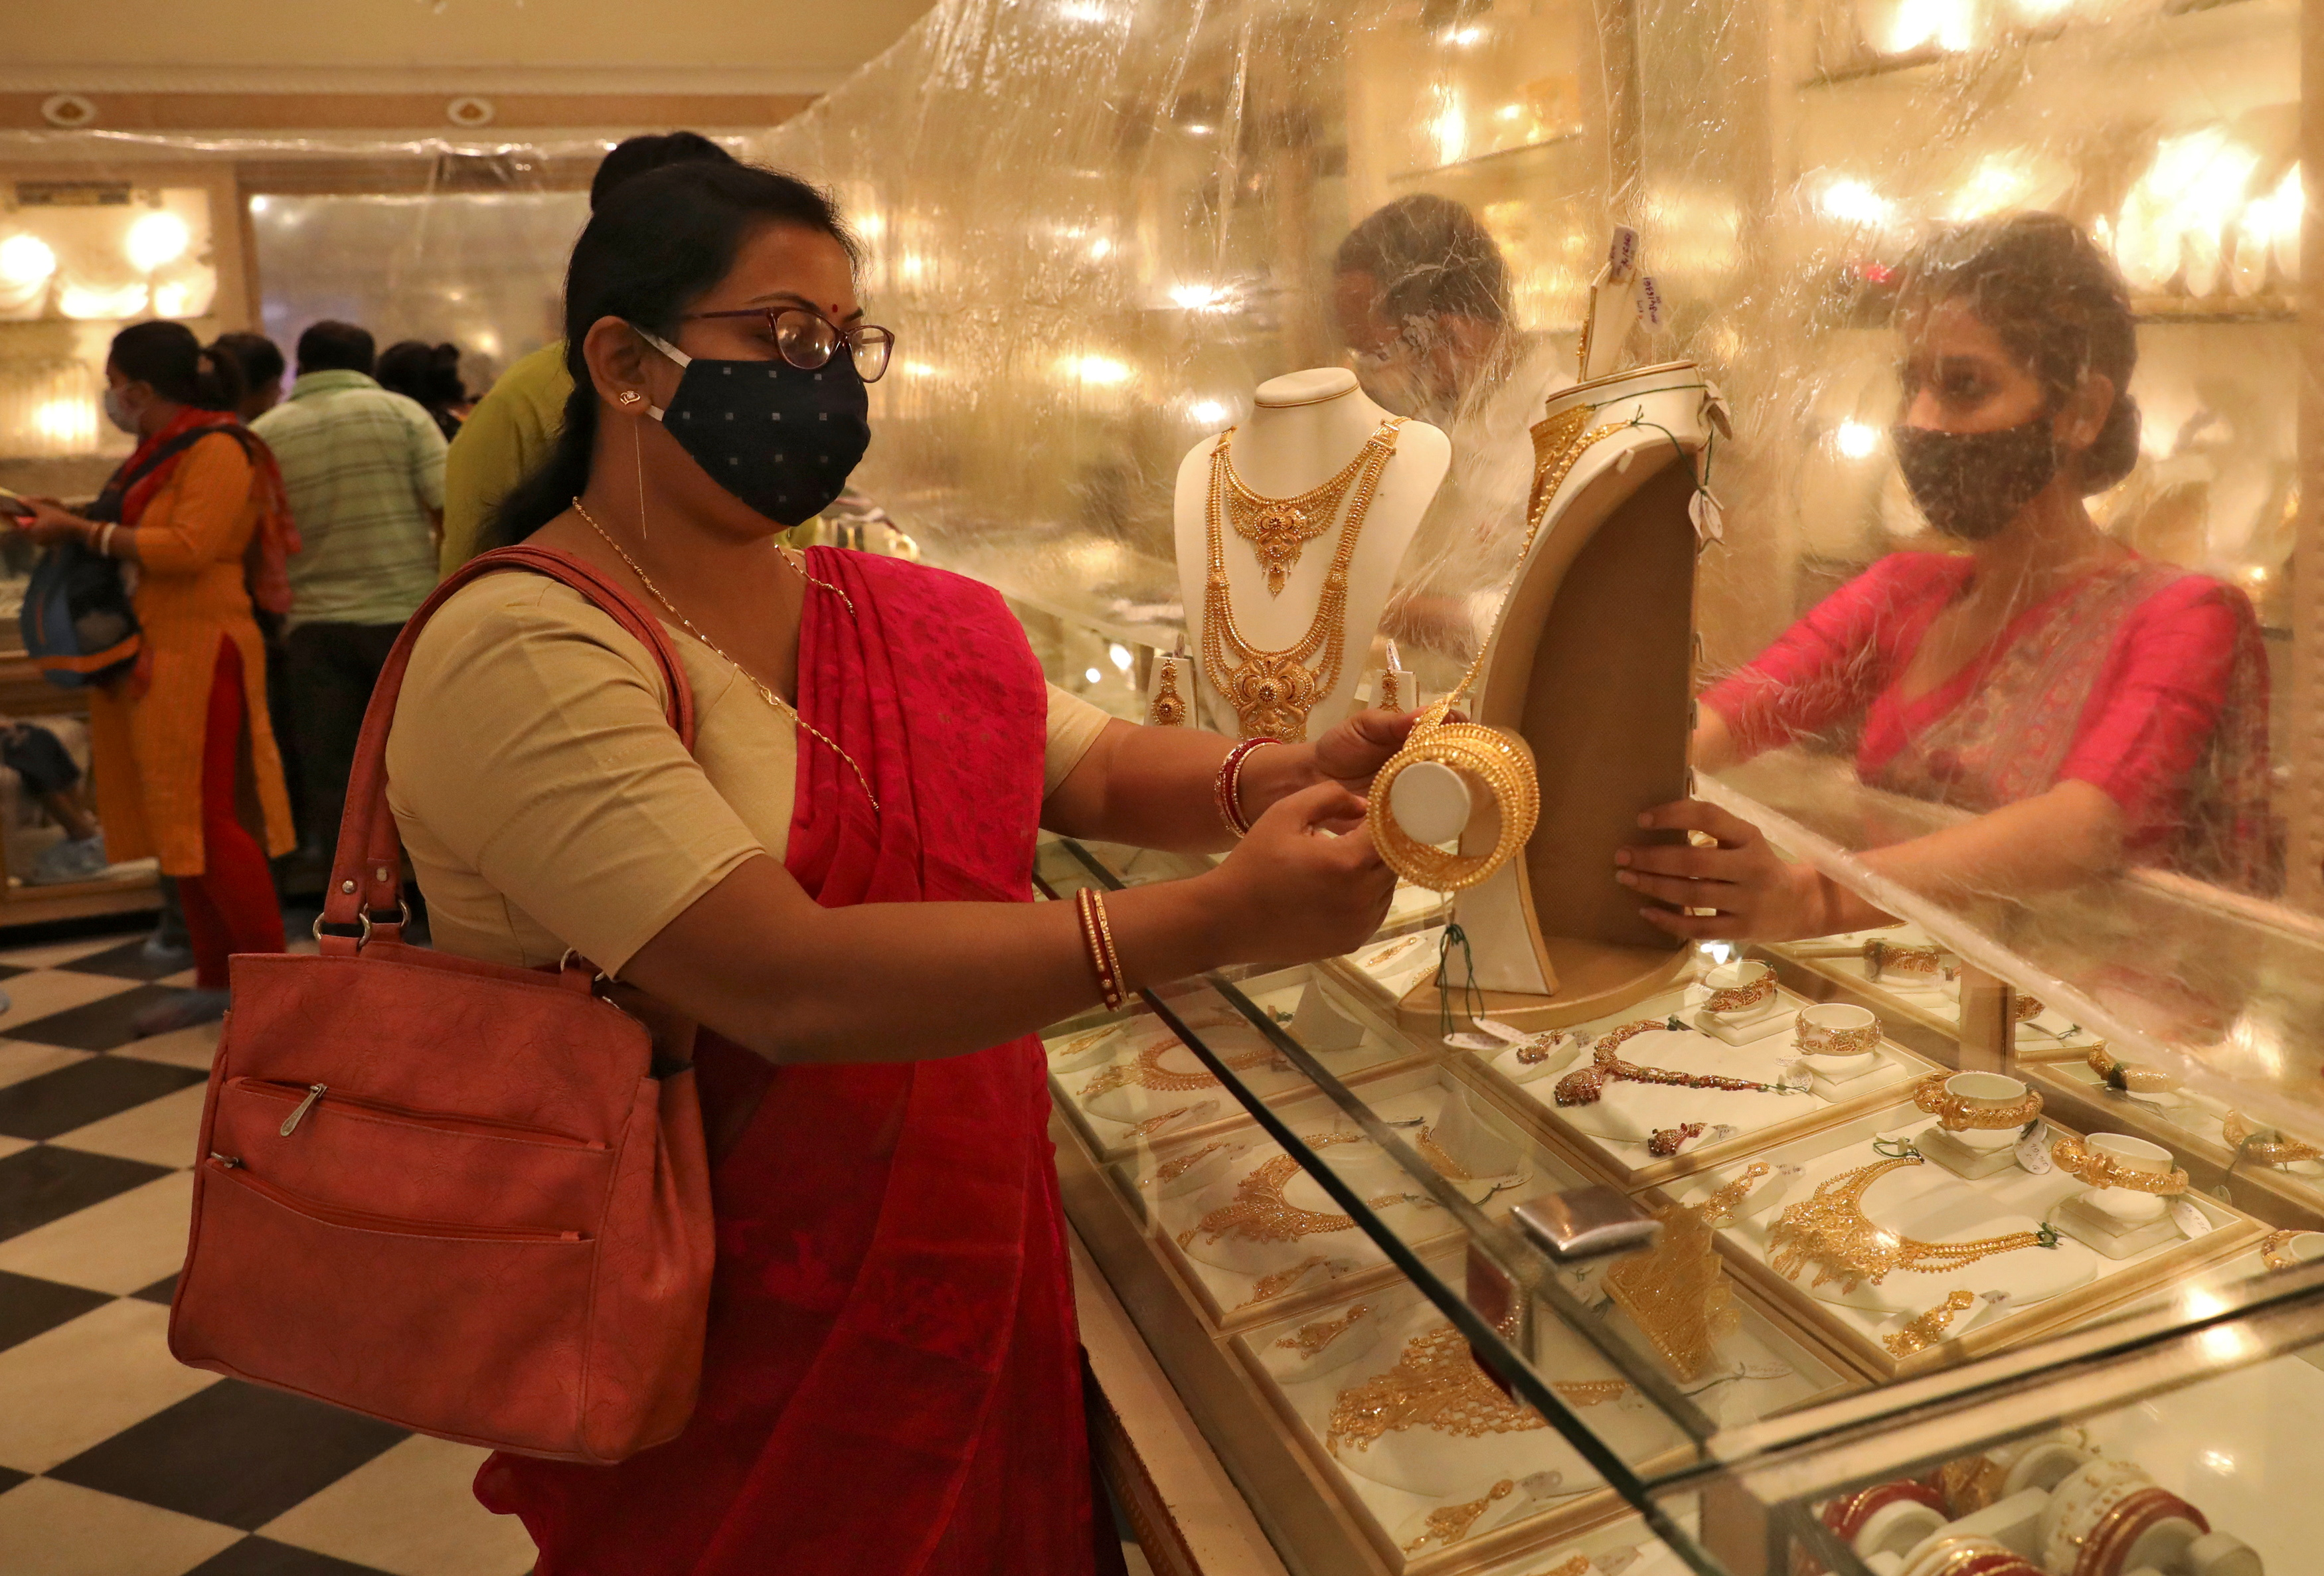 Woman looks at a gold necklace at a jewellery showroom during Dhanteras, a Hindu festival associated with Lakshmi, the goddess of wealth, amidst the spread of COVID-19 in Kolkata, India, November 13, 2020. REUTERS/Rupak De Chowdhuri